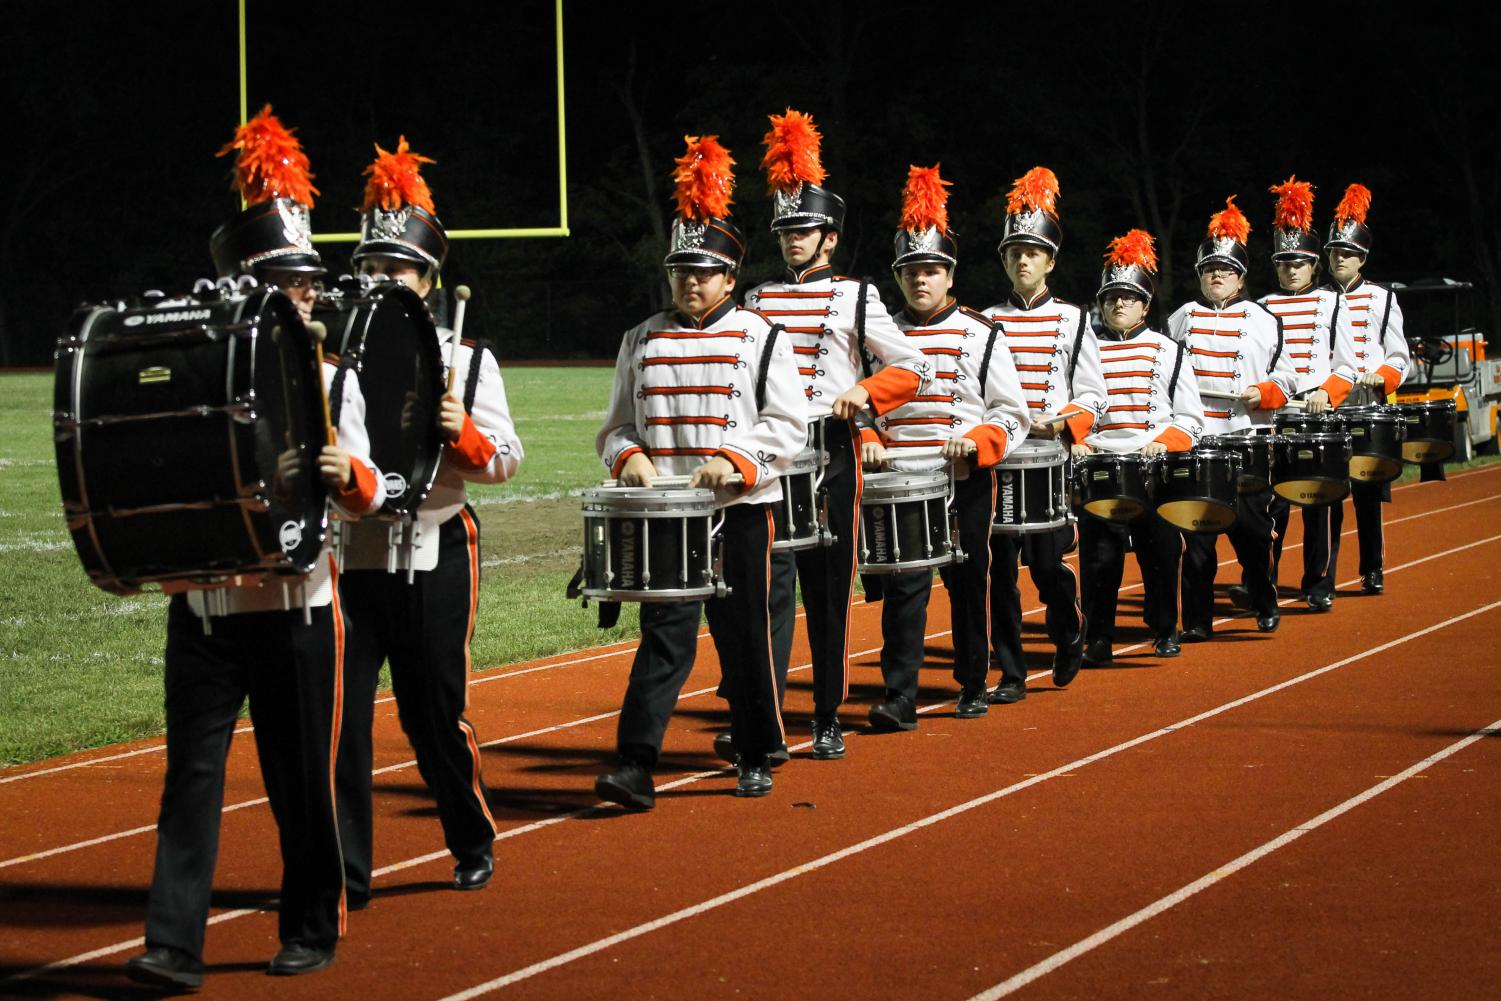 The Marching Rams  perform during the halftime show at the football game against Althoff.